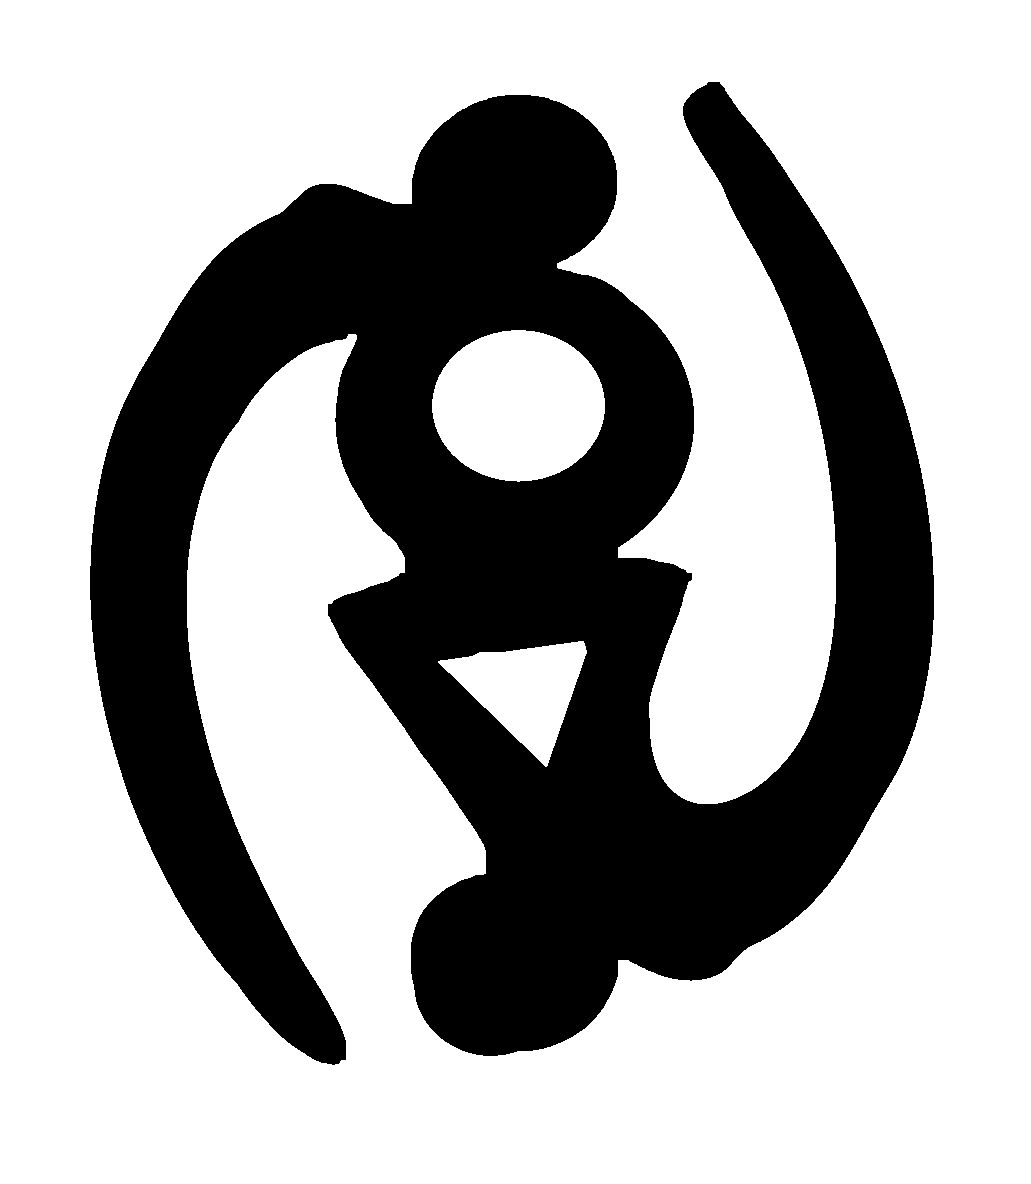 Akan symbol for the death of god dark pinterest symbols akan symbol for the death of god buycottarizona Images